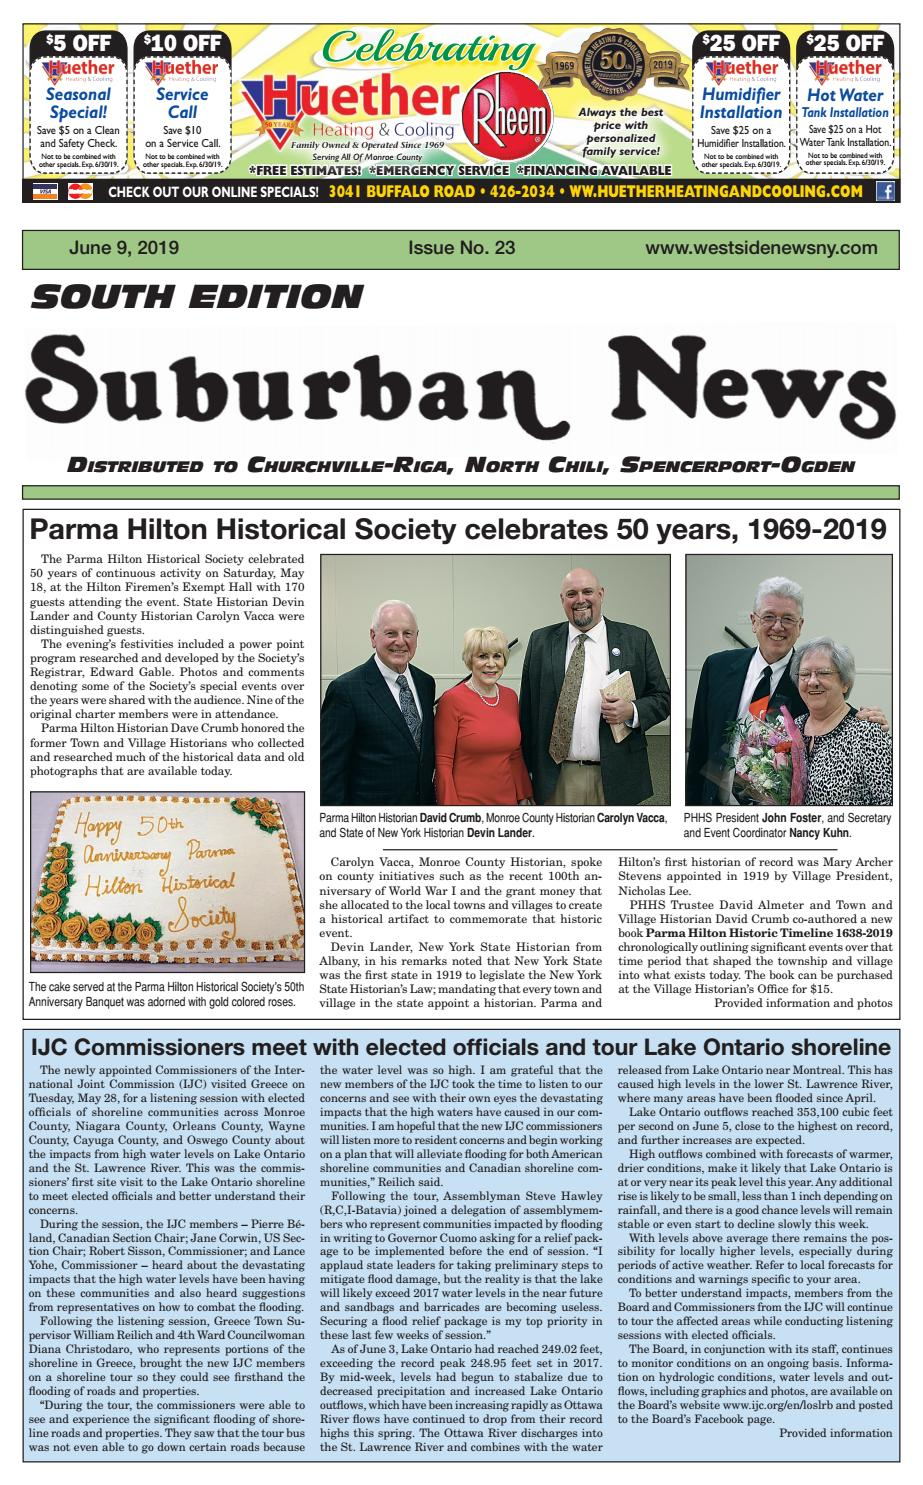 Suburban News South Edition – June 9, 2019 by Westside News